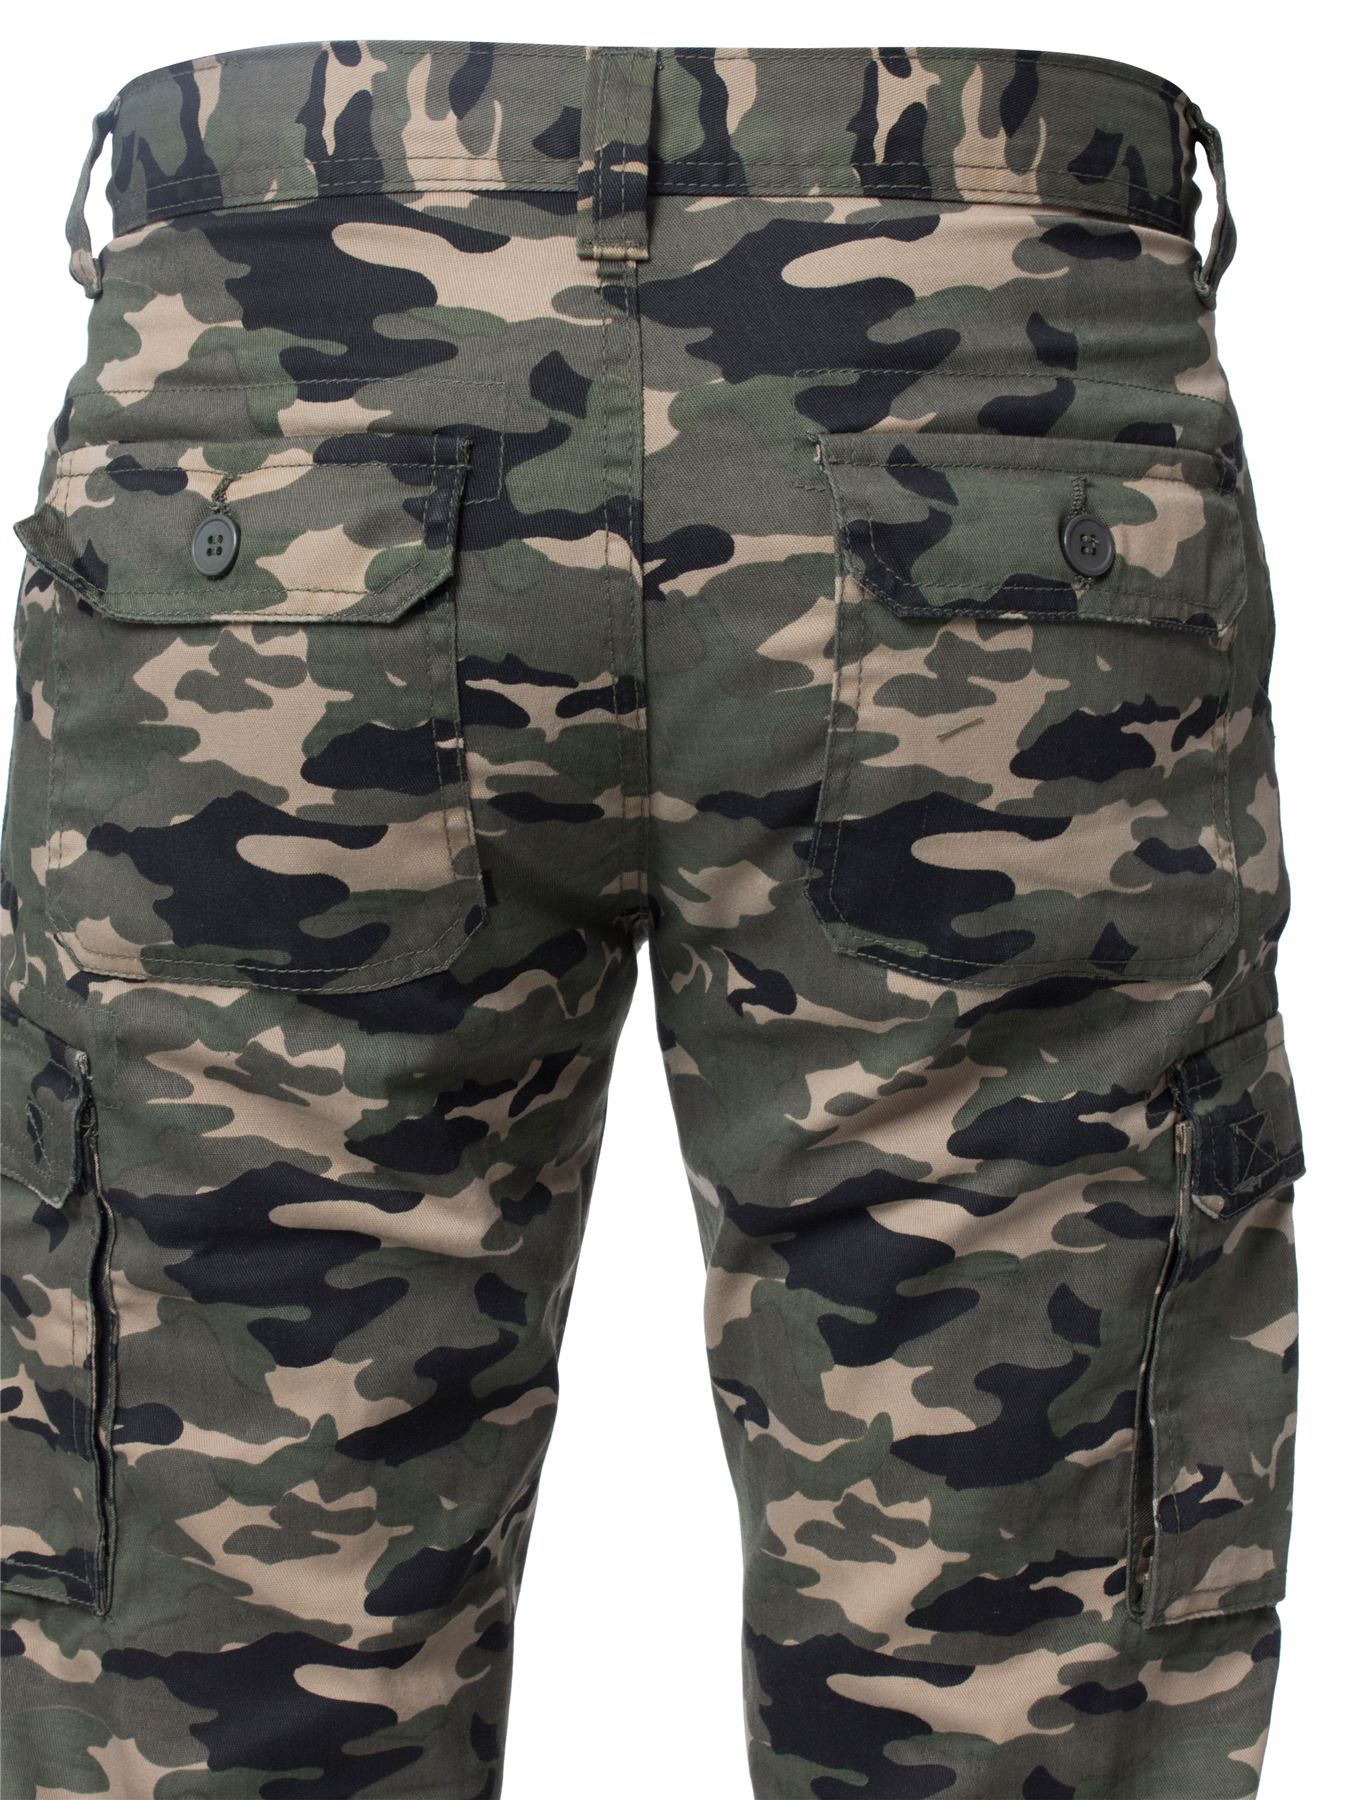 Kruze-Mens-Military-Combat-Trousers-Camouflage-Cargo-Camo-Army-Casual-Work-Pants thumbnail 21